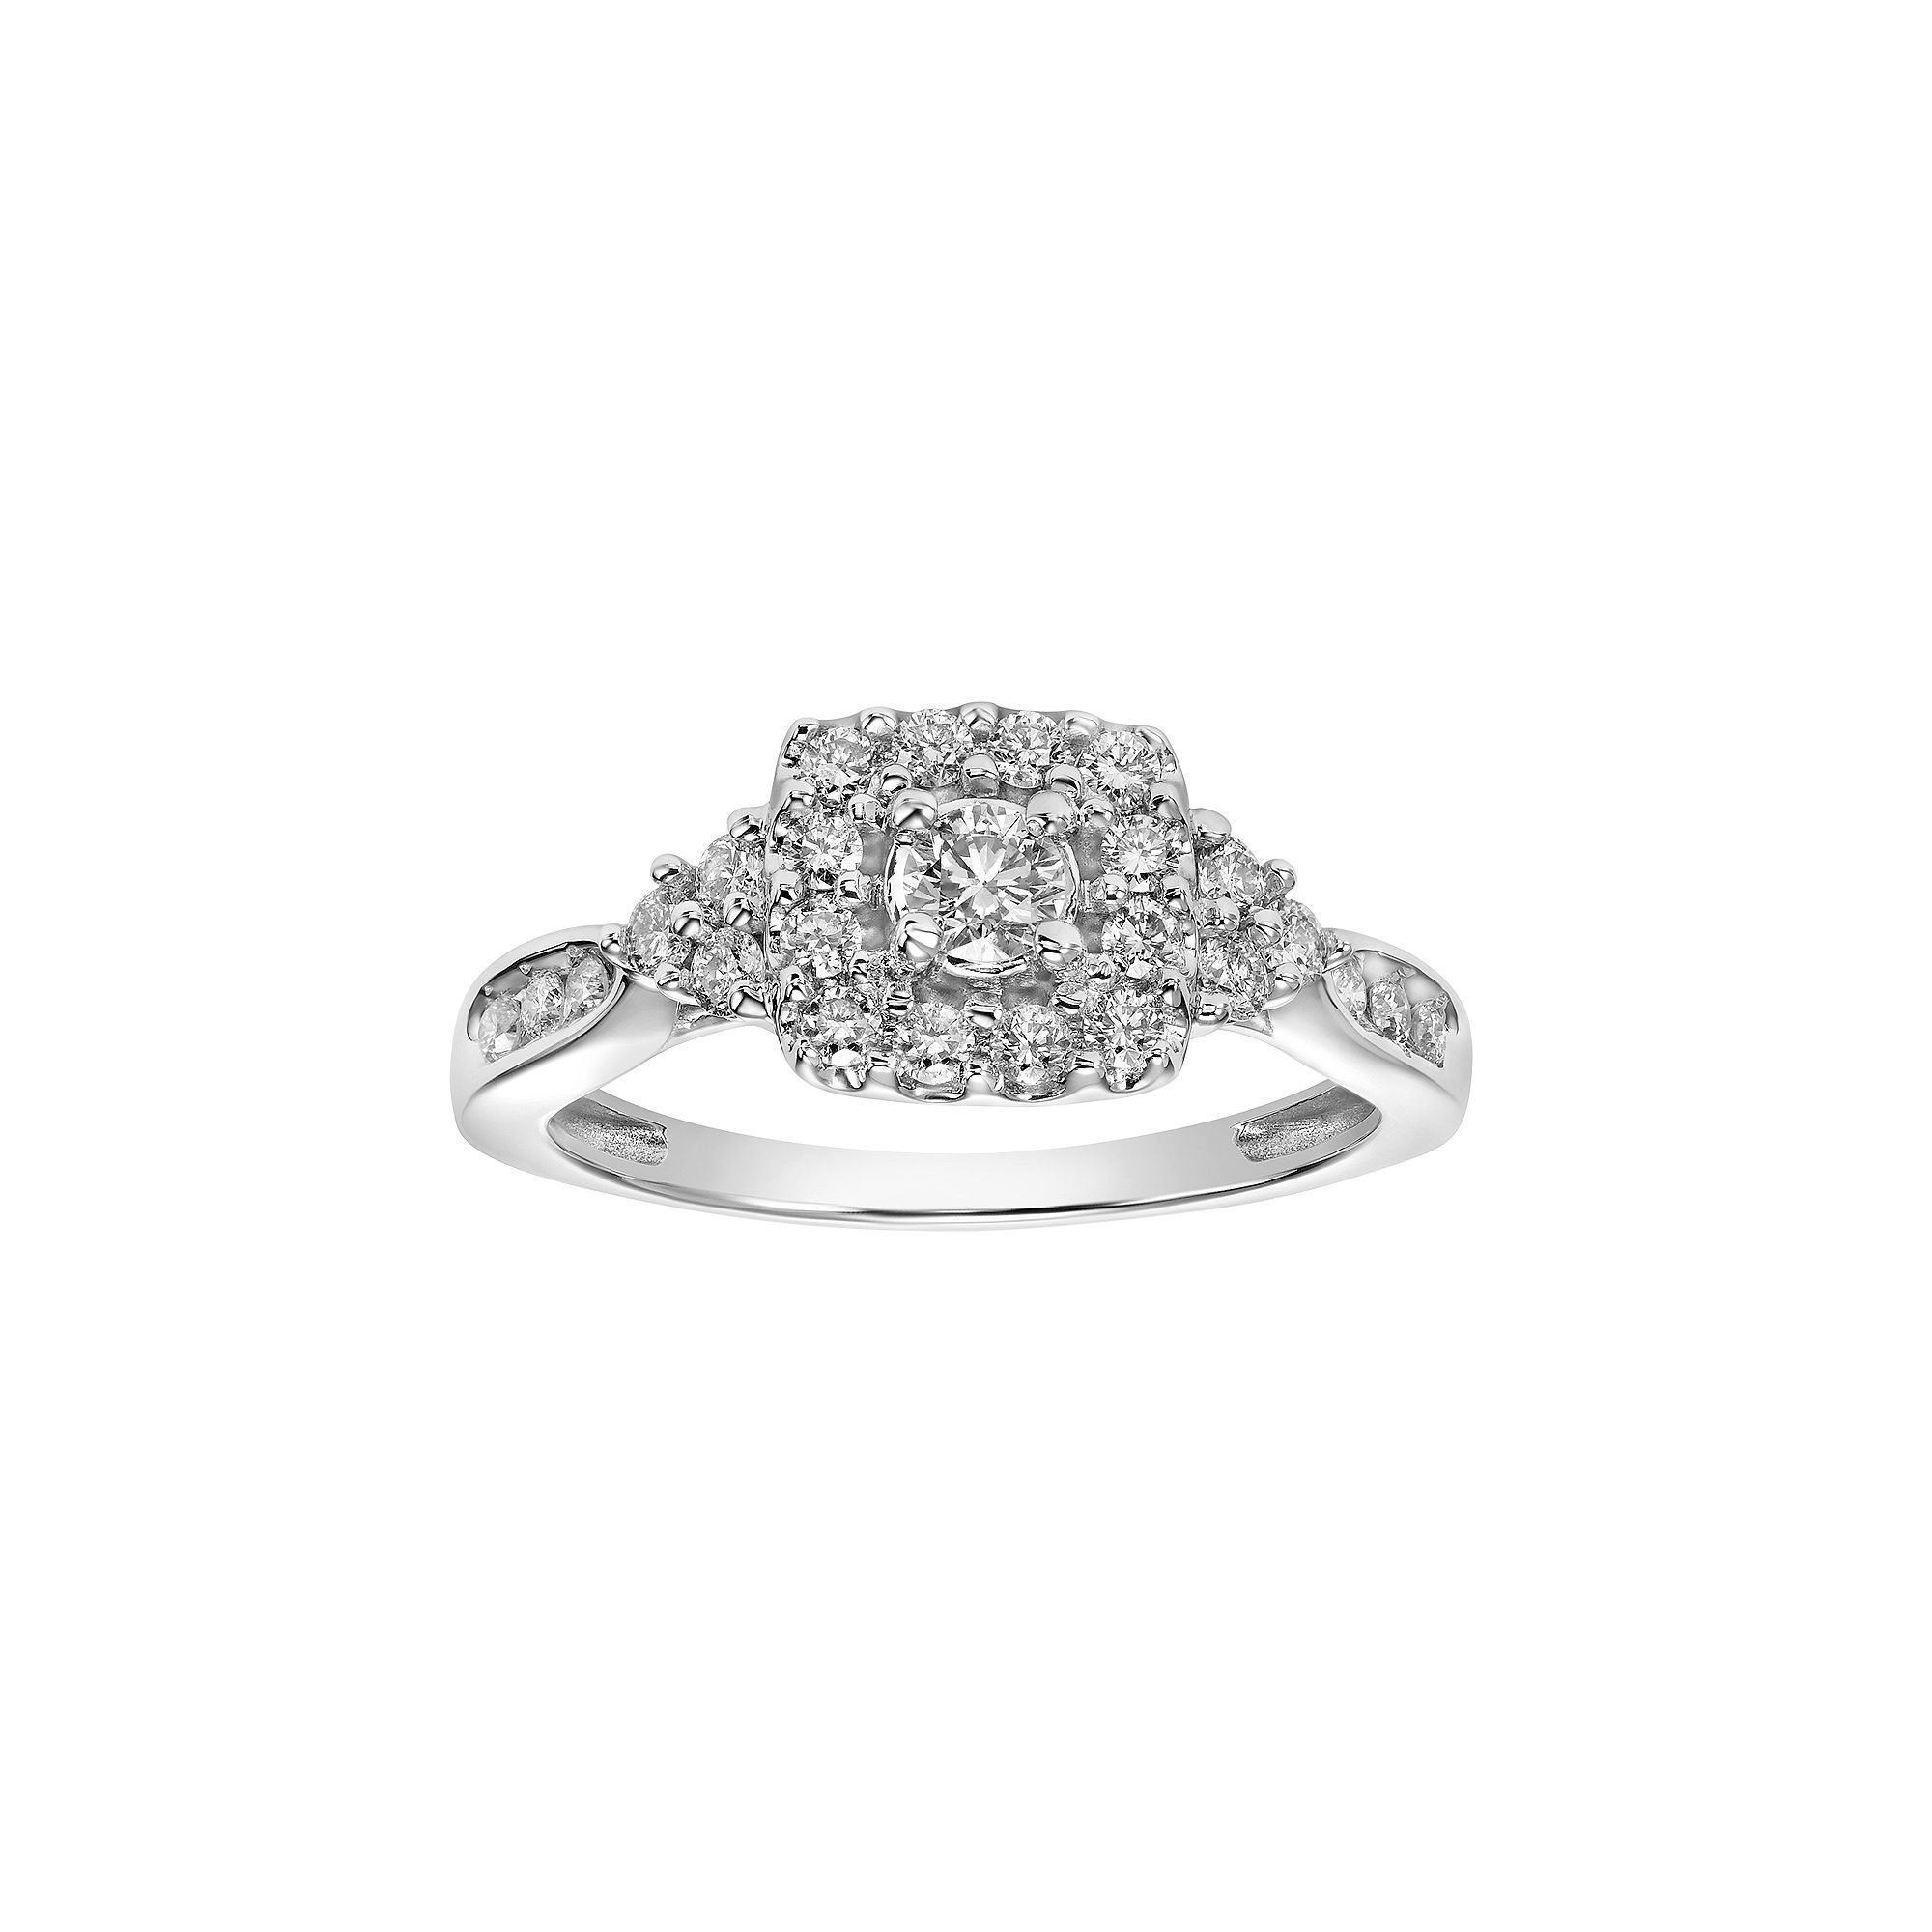 p diamond shaped square jewellery rings wedding platinum ring engagement